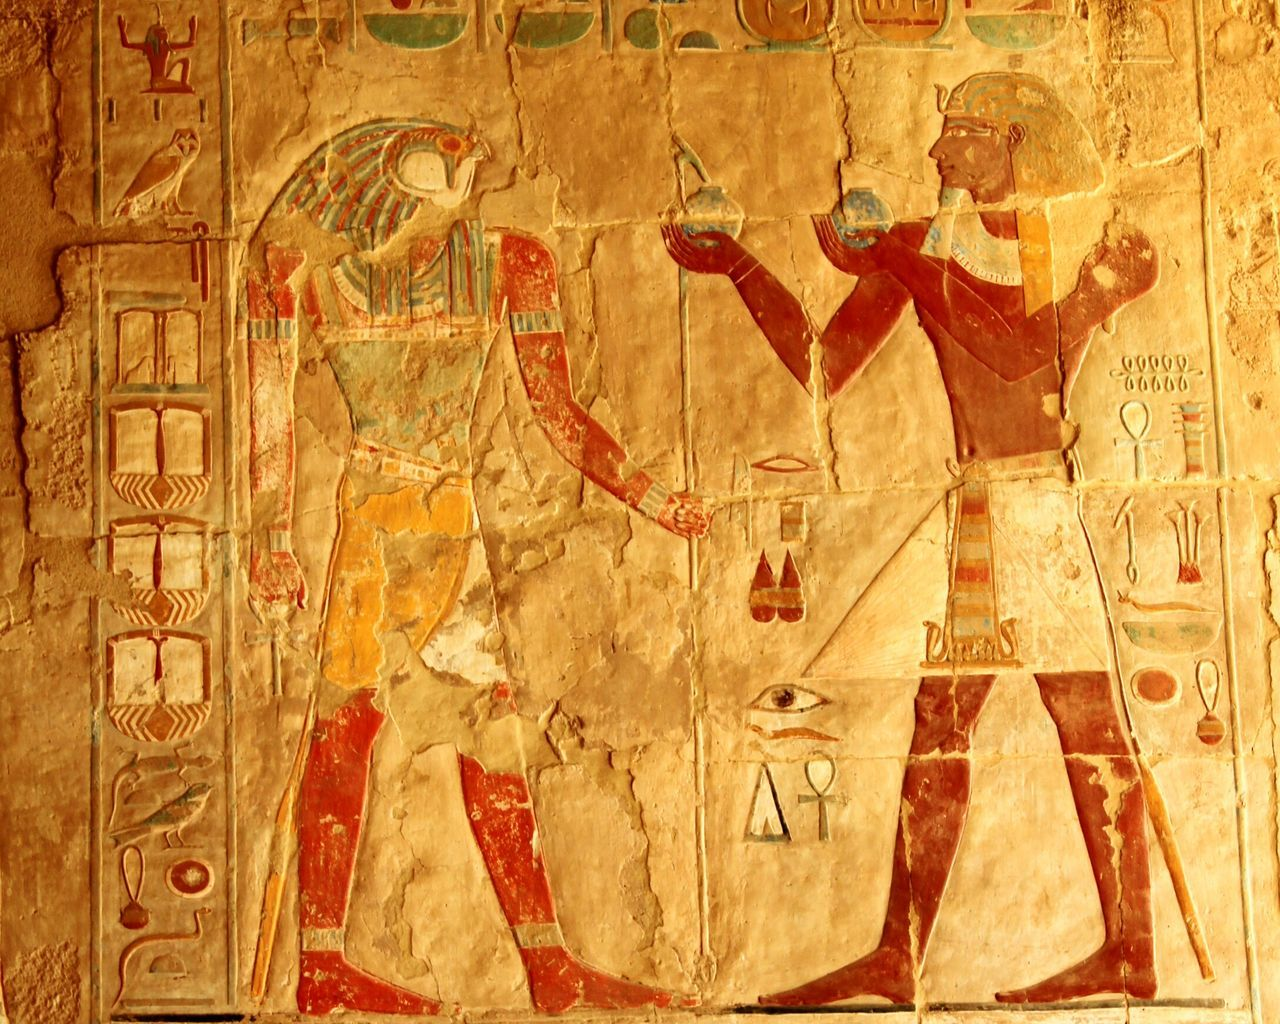 Egypt Temple Of Hatshepsut Hieroglyphics Historical Monuments